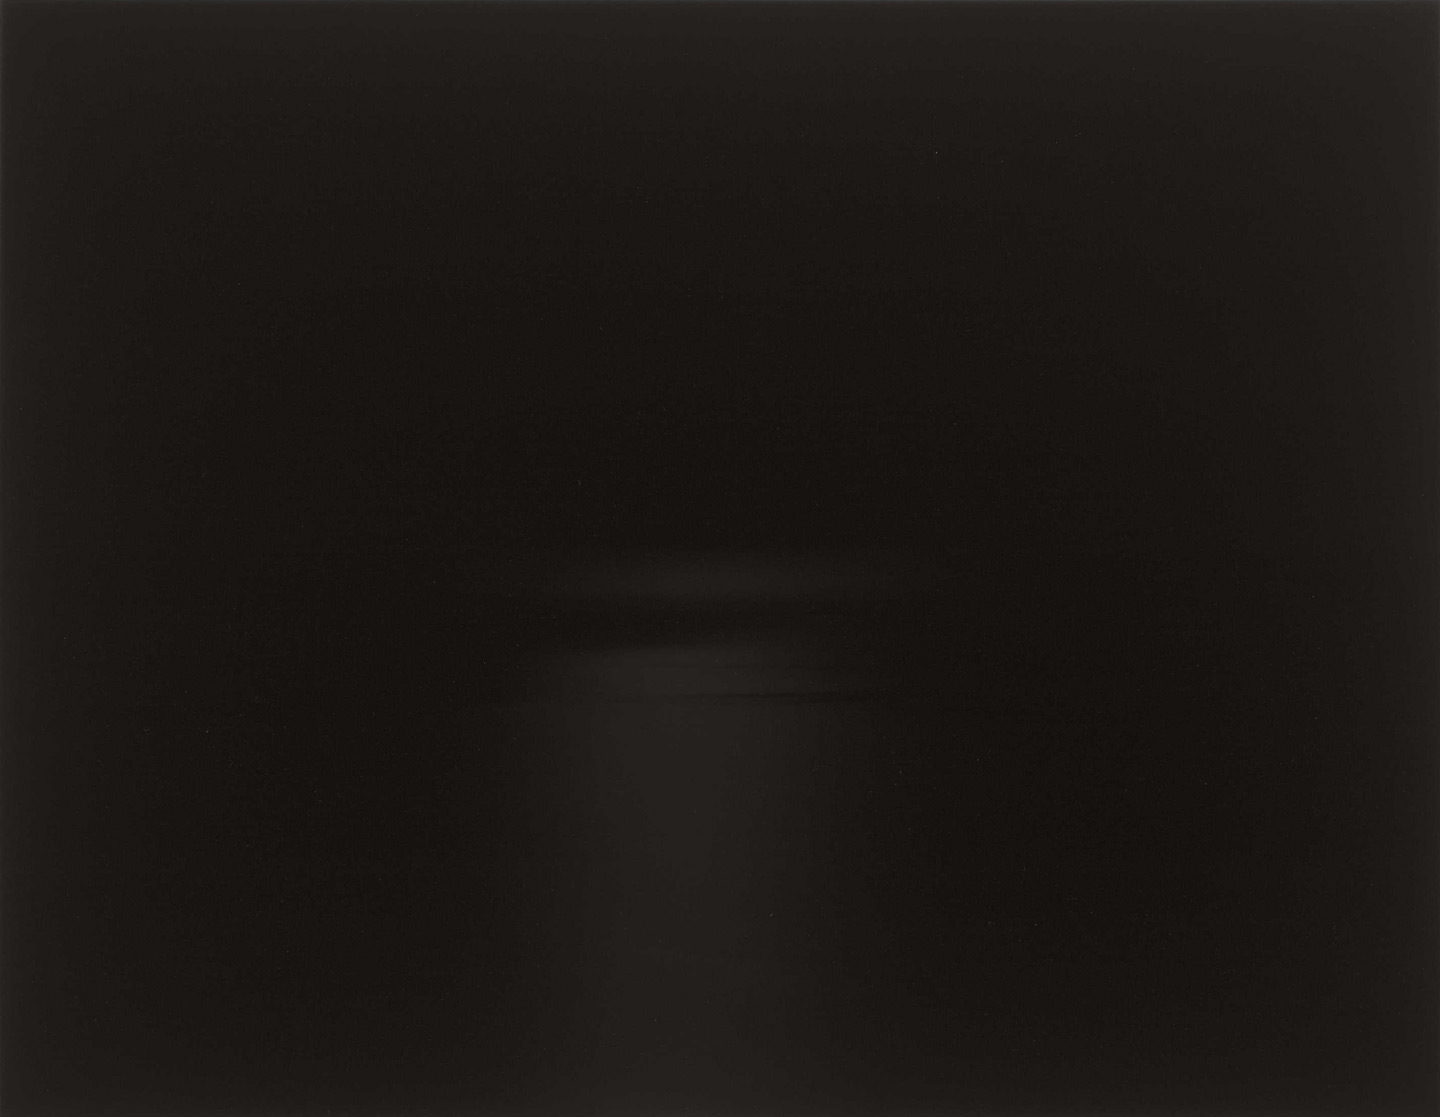 Hiroshi Sugimoto: Dioramas, Seascapes, Theaters, Portraits & Architecture (Complete Set of 5 Damiani Titles) [Each SIGNED in English]